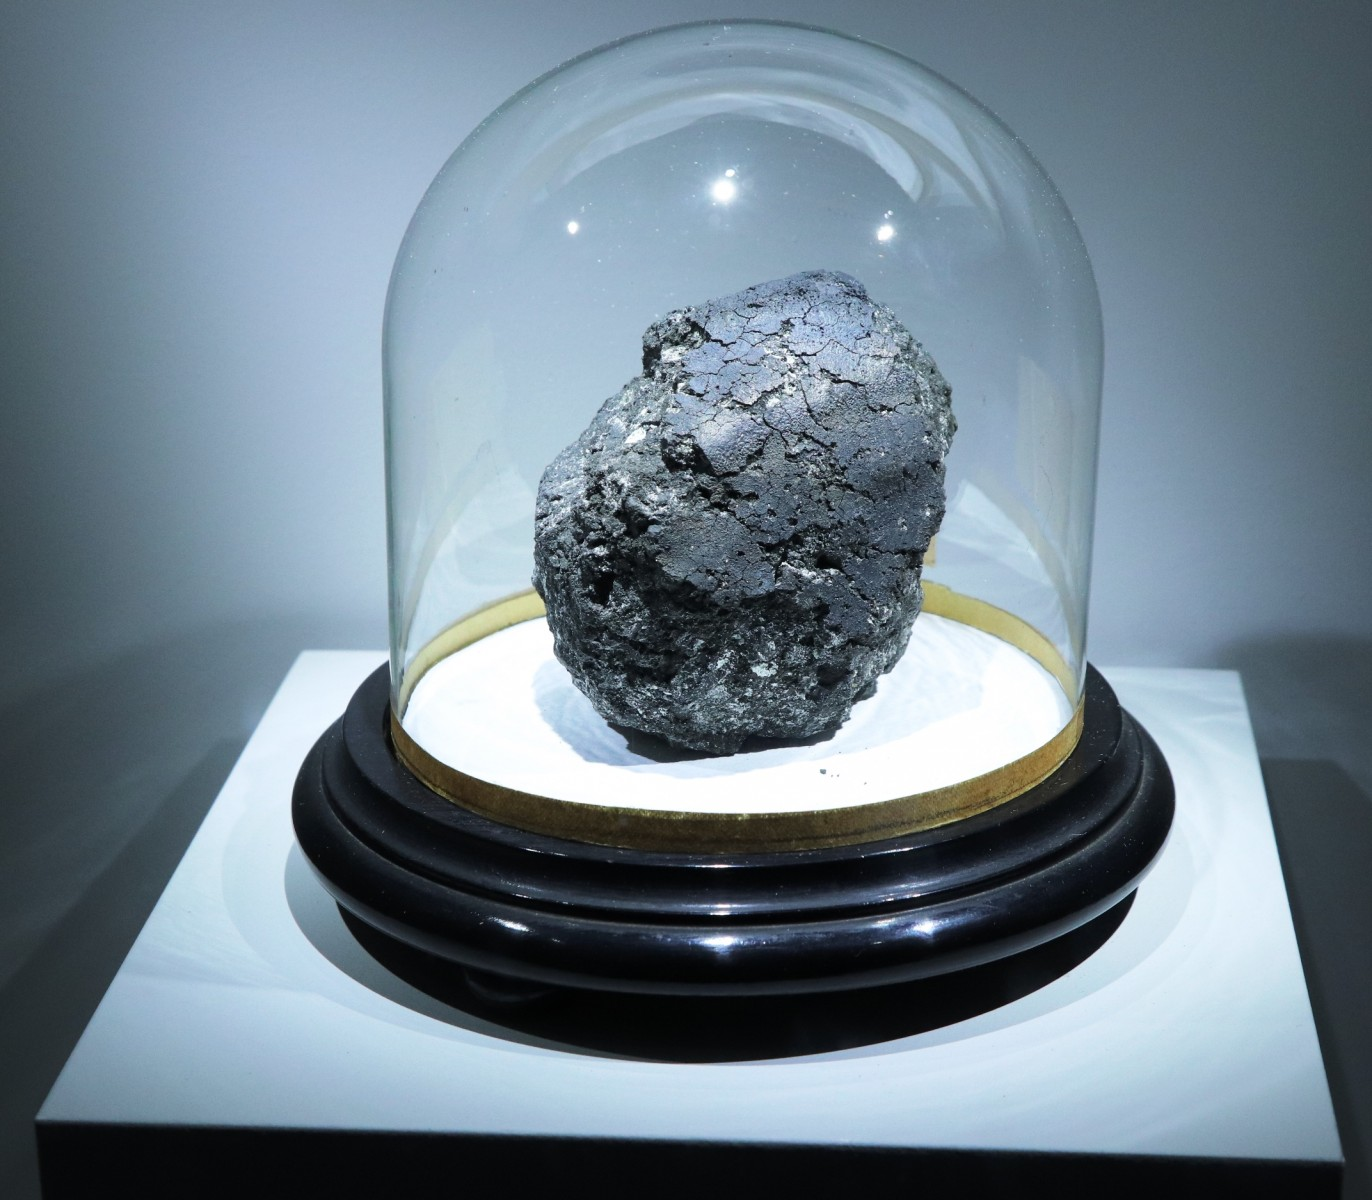 The Orgueil carbonaceous meteorite